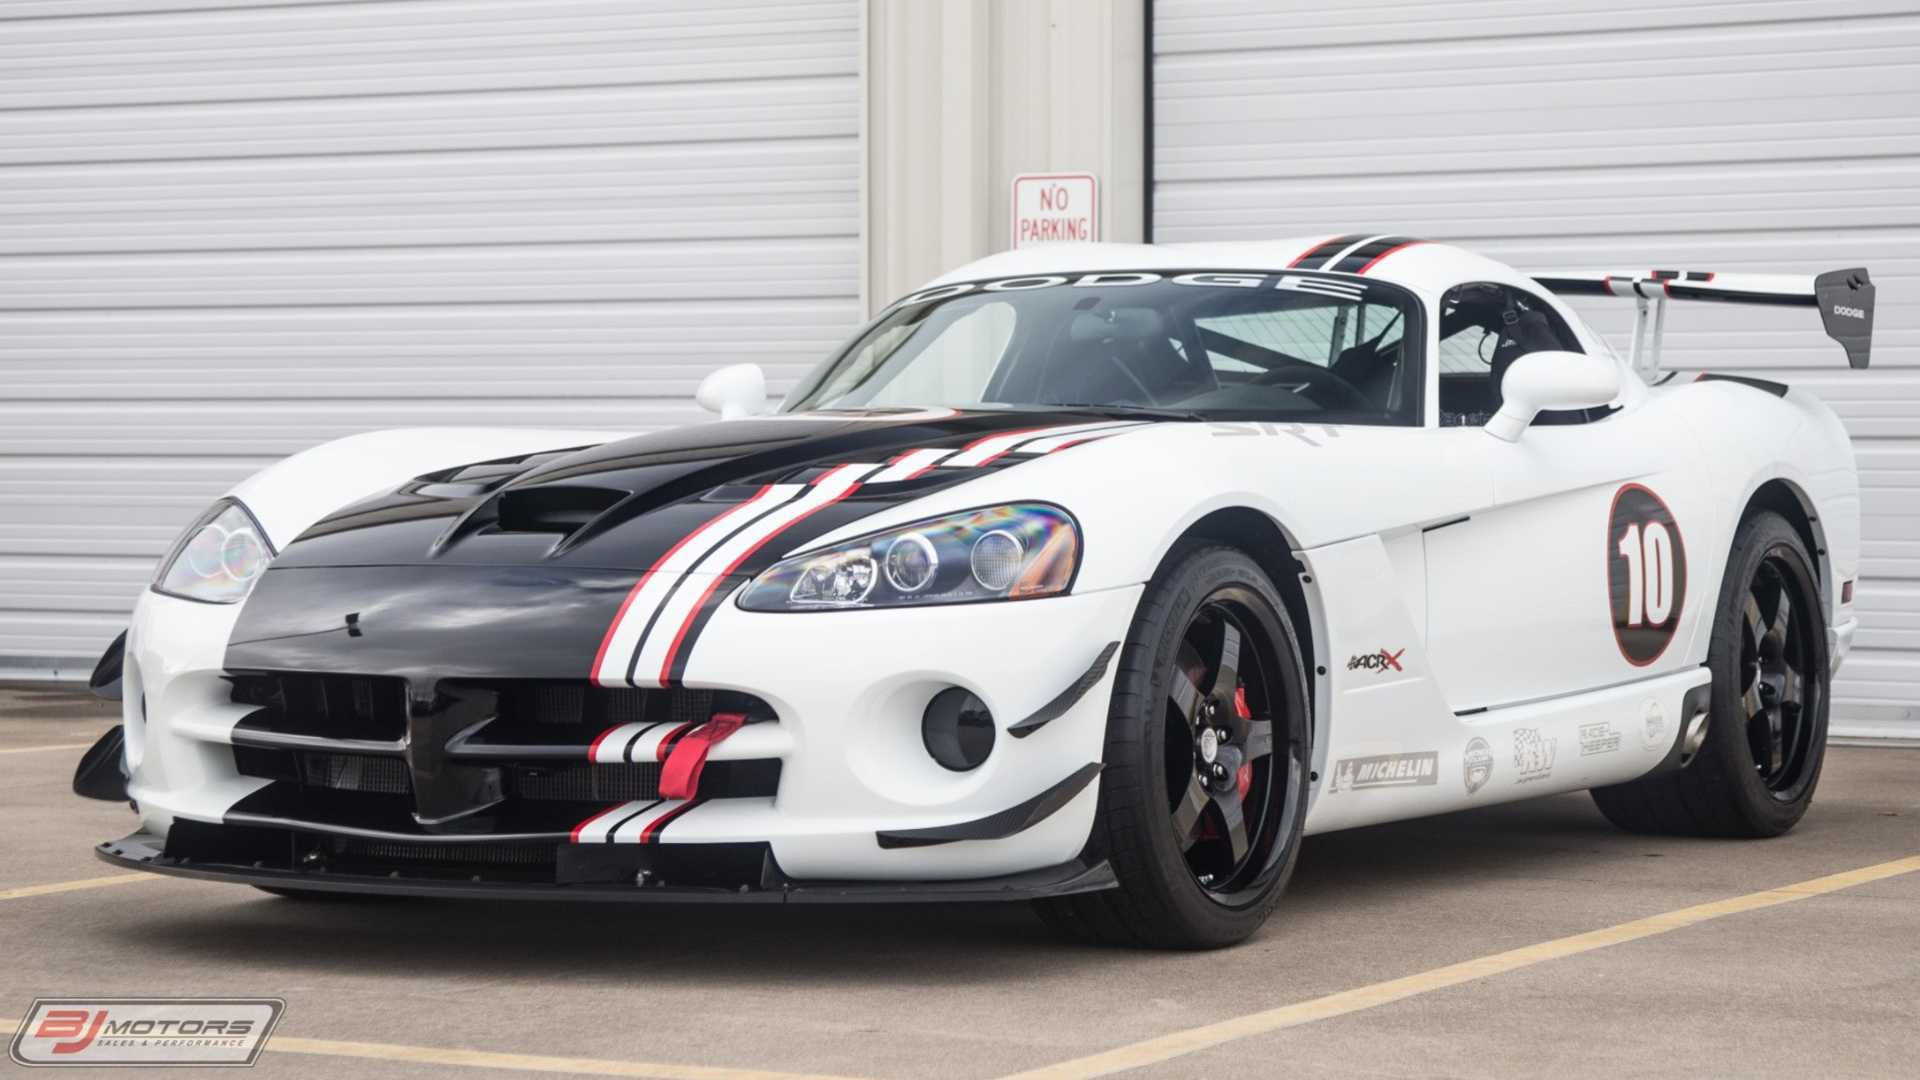 Rare 159 000 Dodge Viper Acr X Has Only 10 Miles